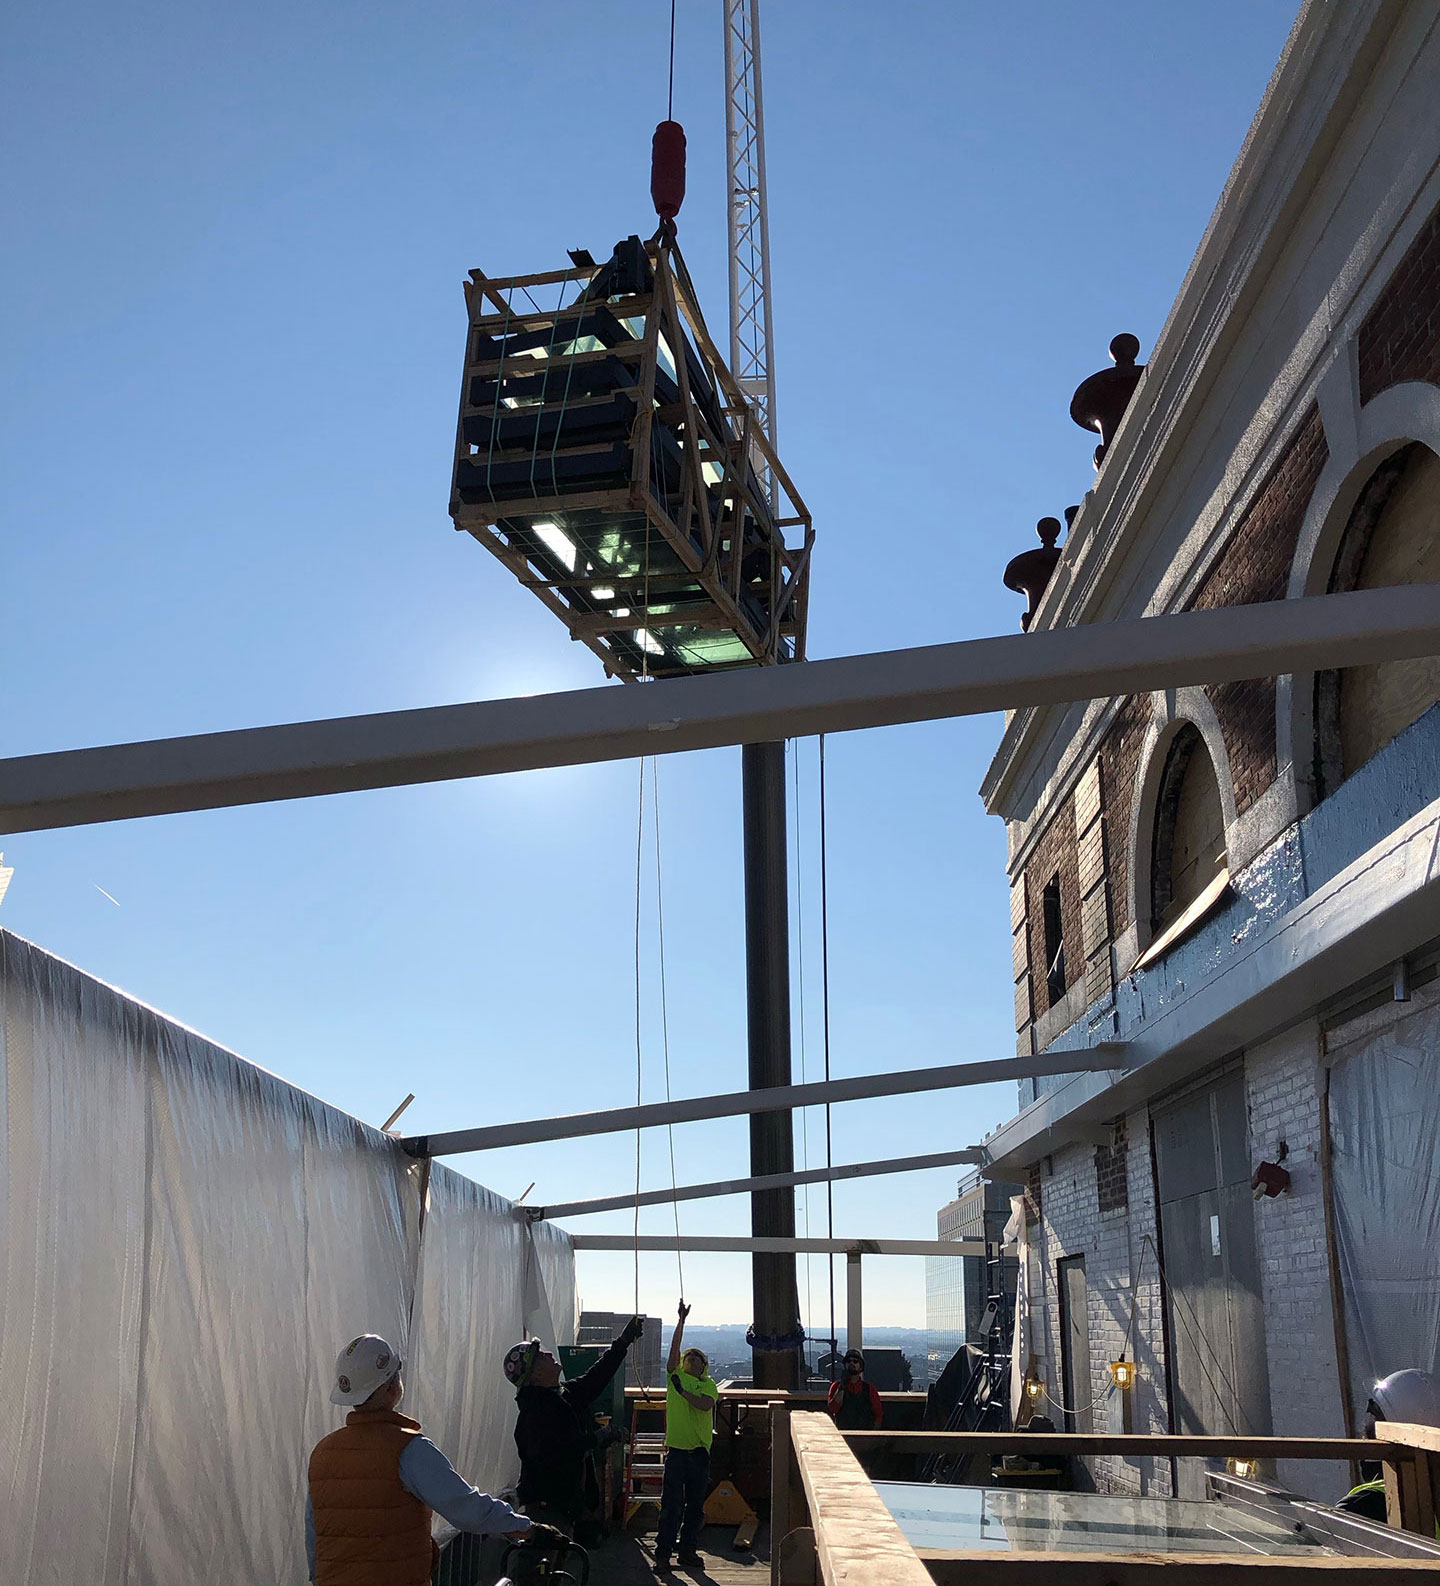 Retractable patio structure being installed on rooftop patio